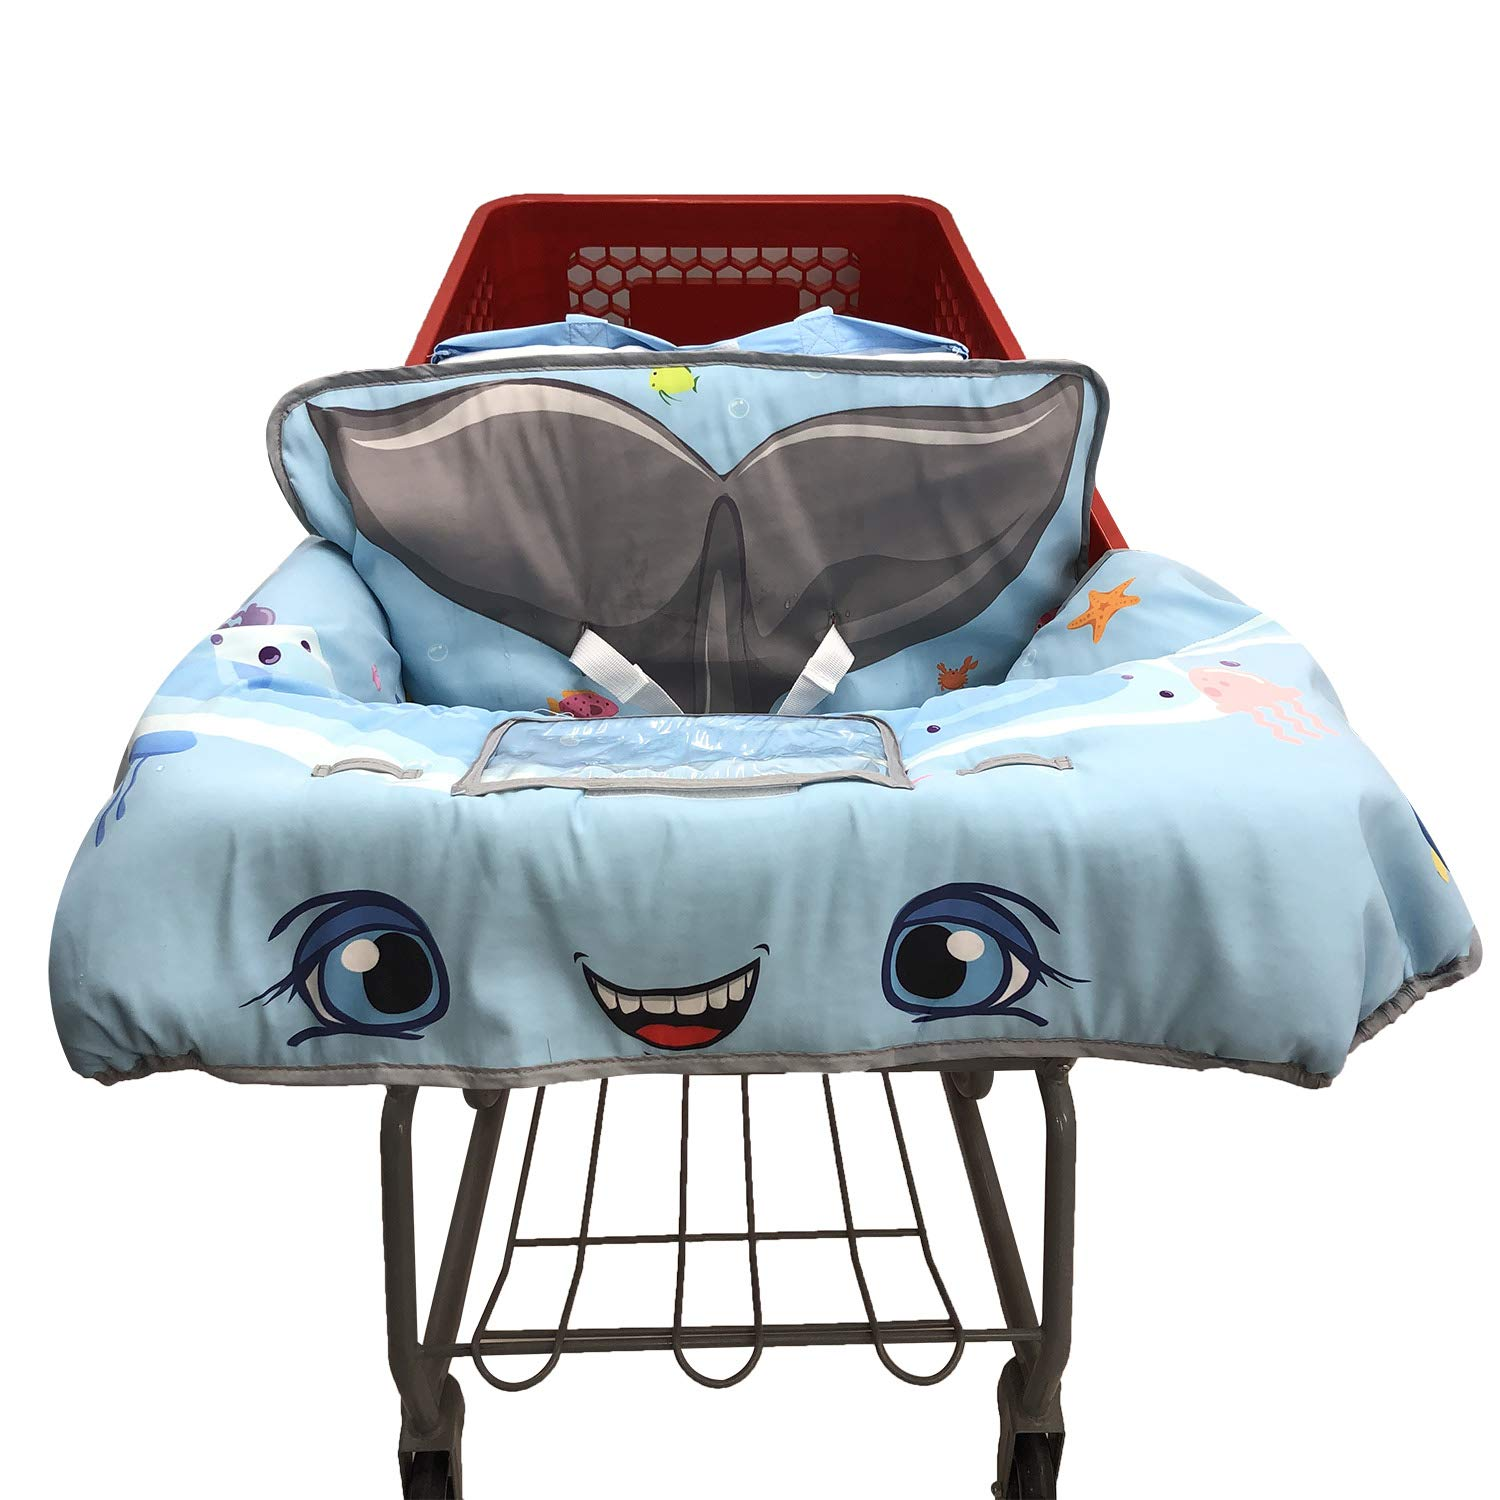 Cute 2-in-1 Grocery Cart Cover and Highchair Seat Cover for Baby (Whale)